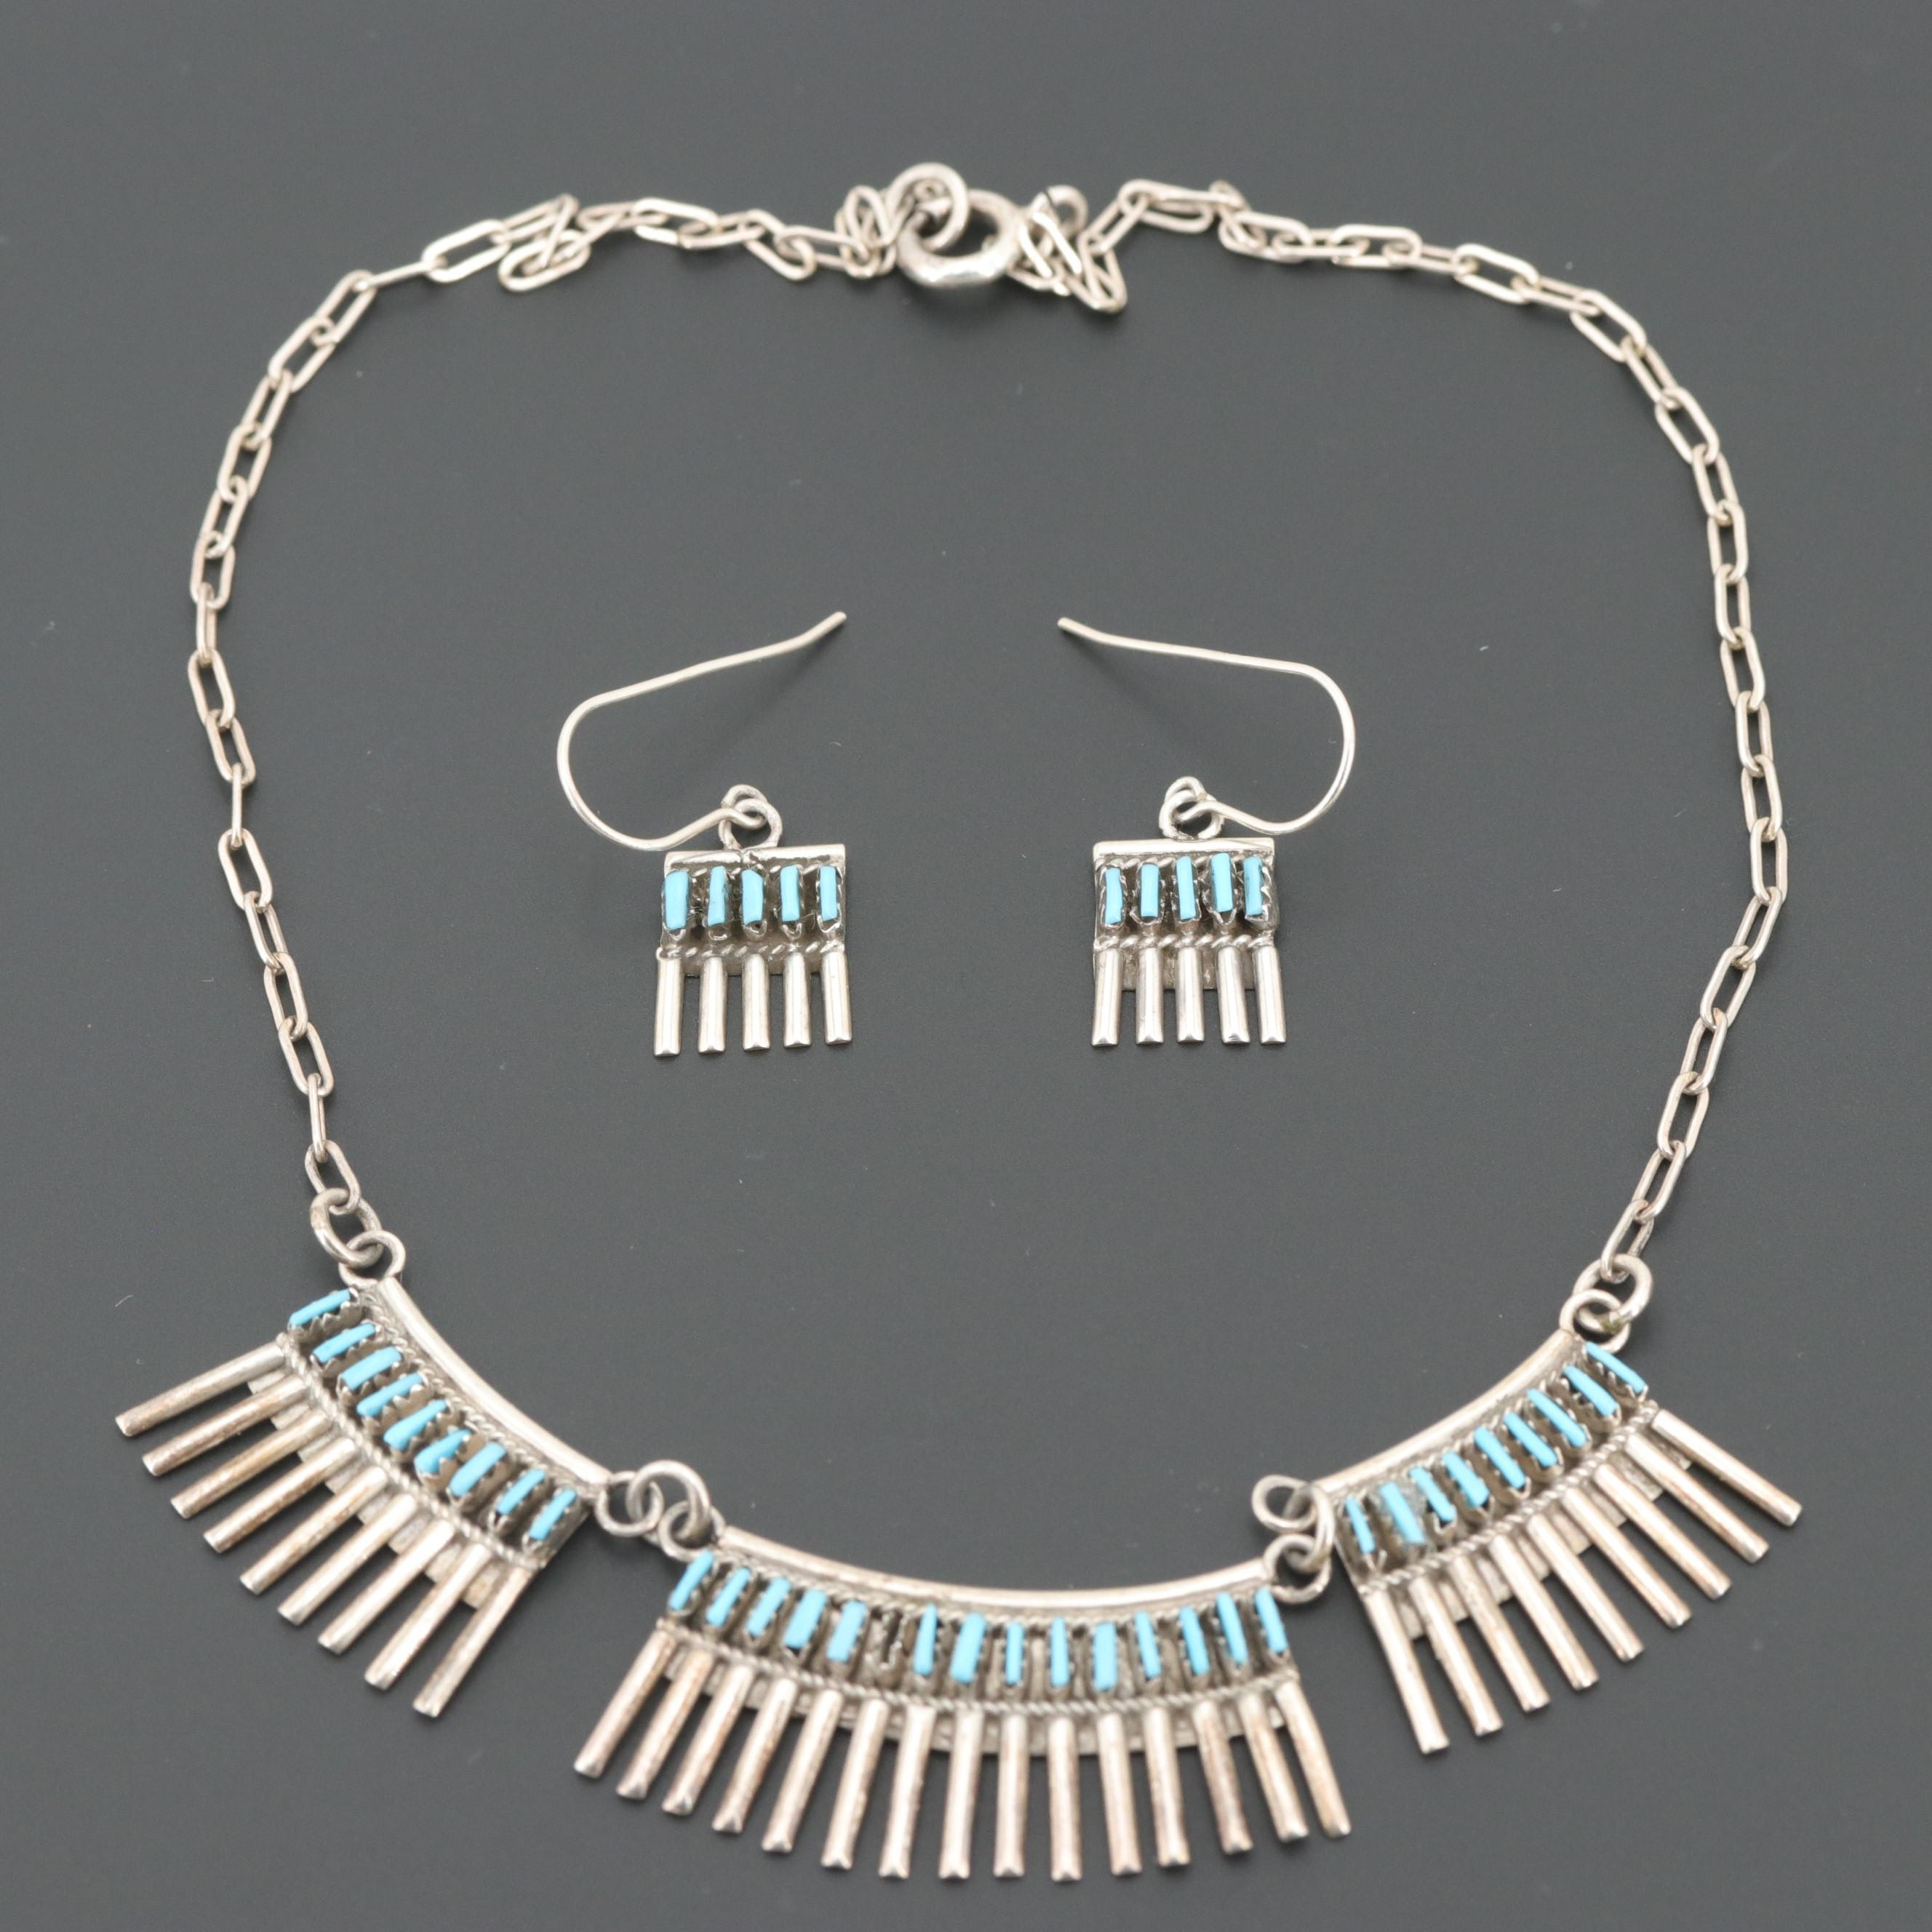 Southwestern Style Sterling Silver Turquoise Necklace and Earrings Set